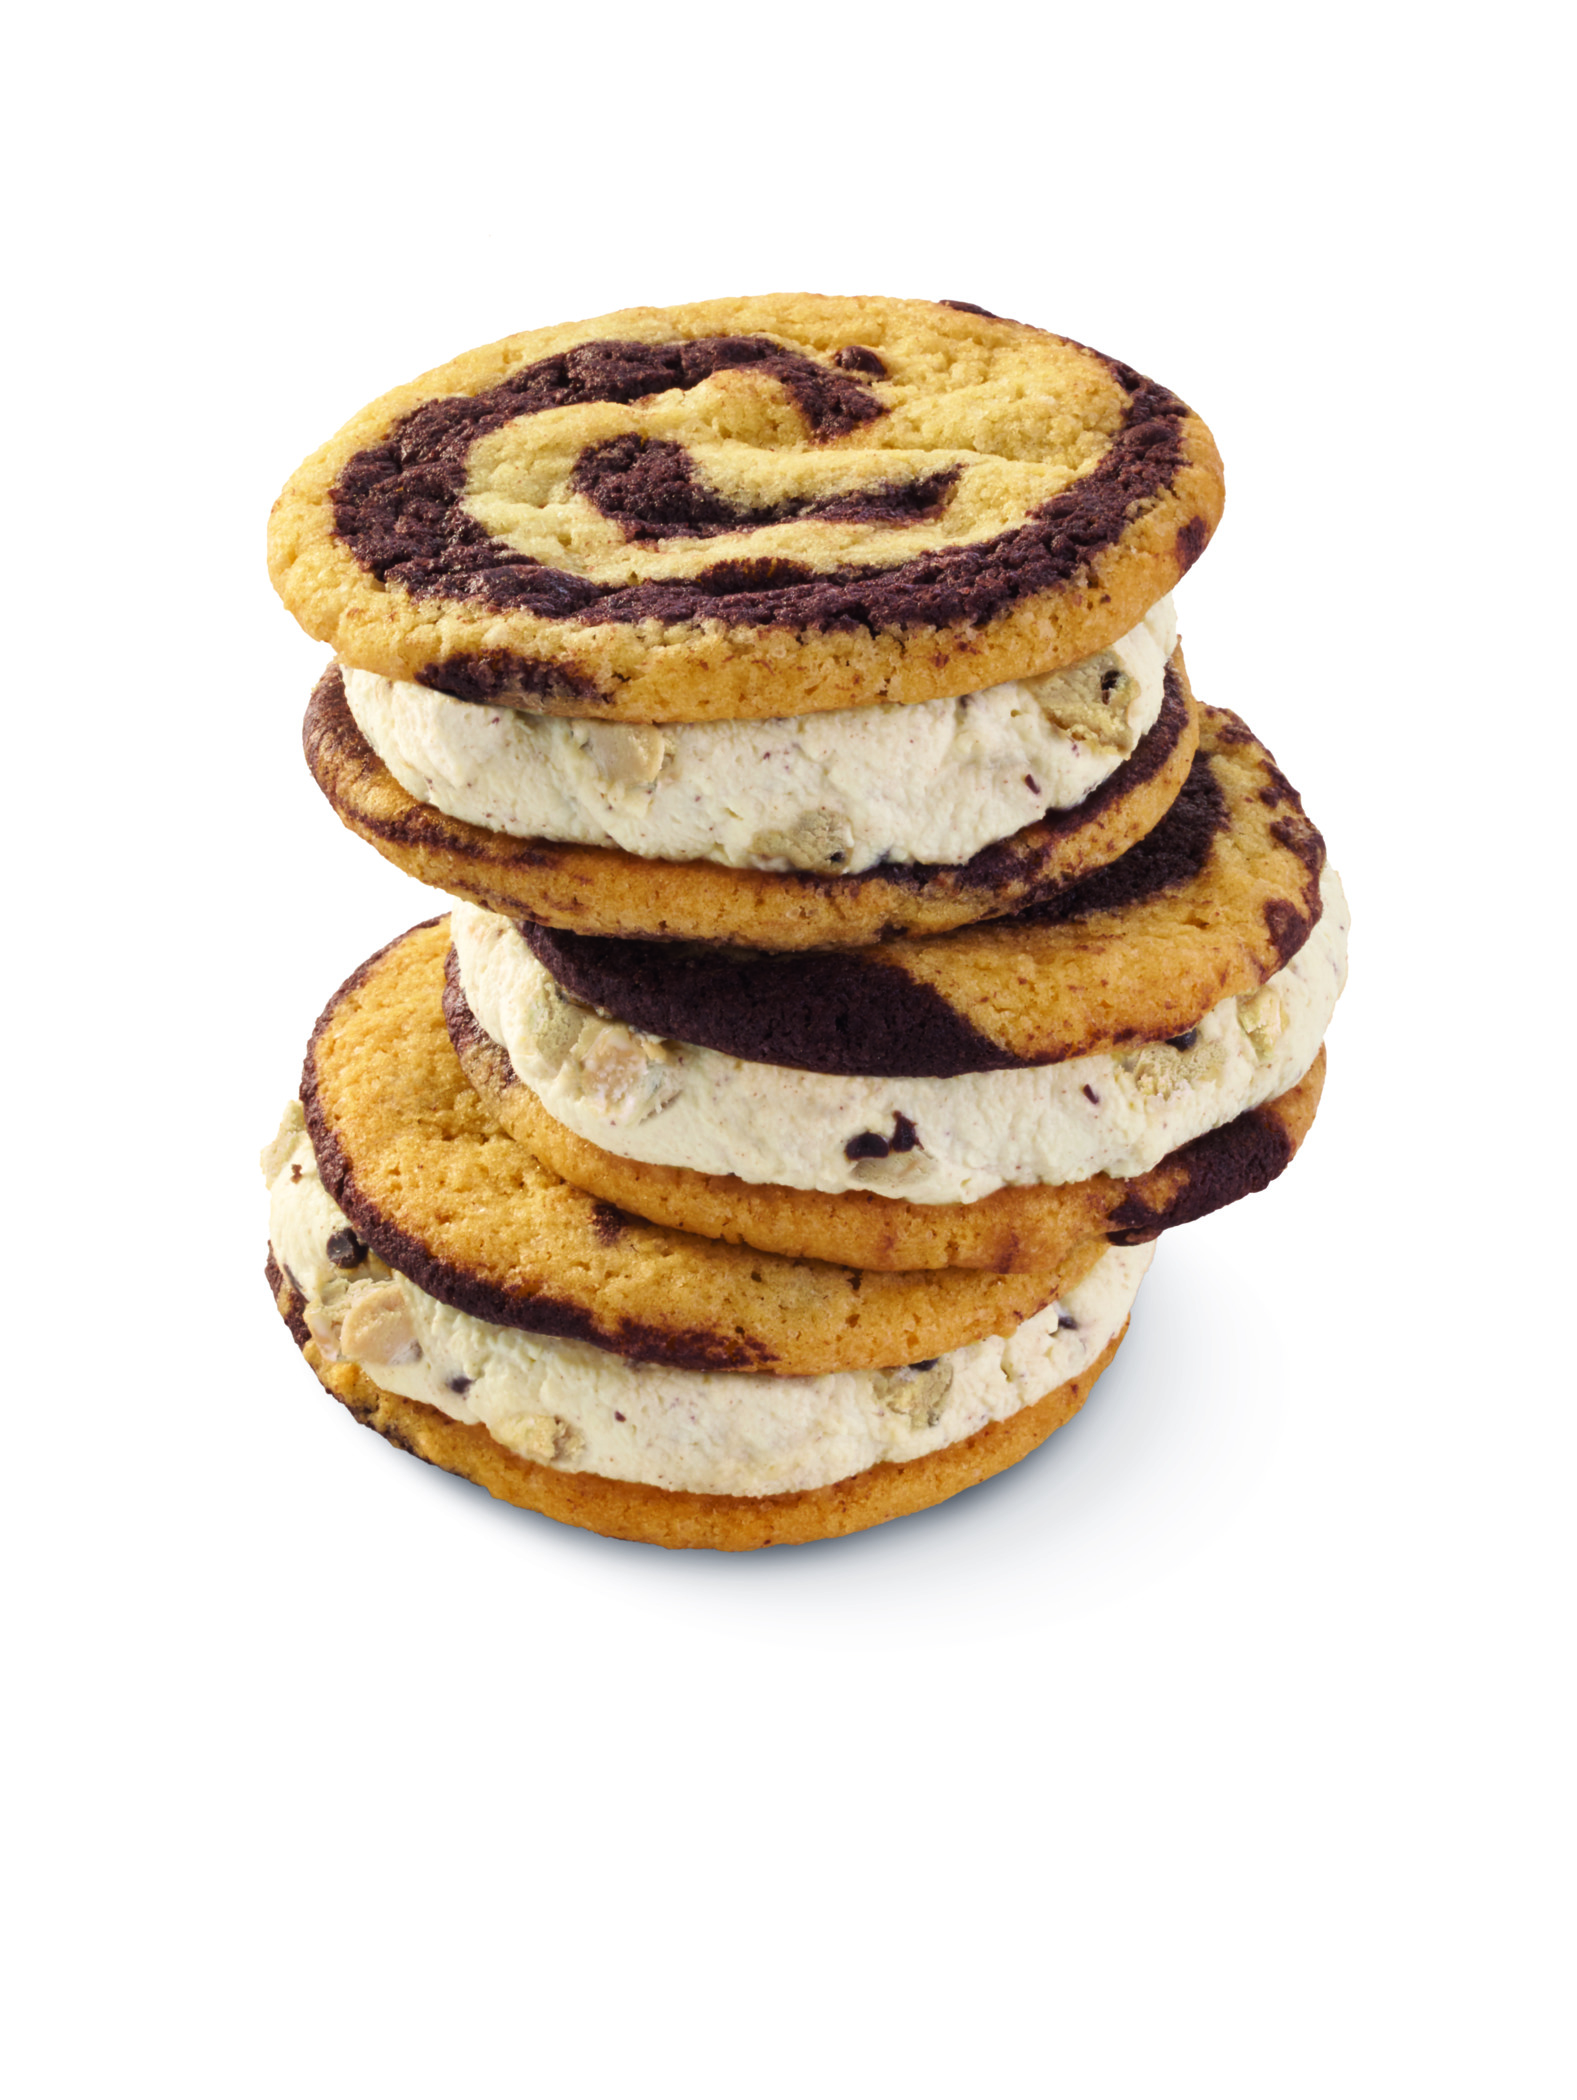 BenJerry_Wich_Cookie_Dough_Stack_of_3.jpg